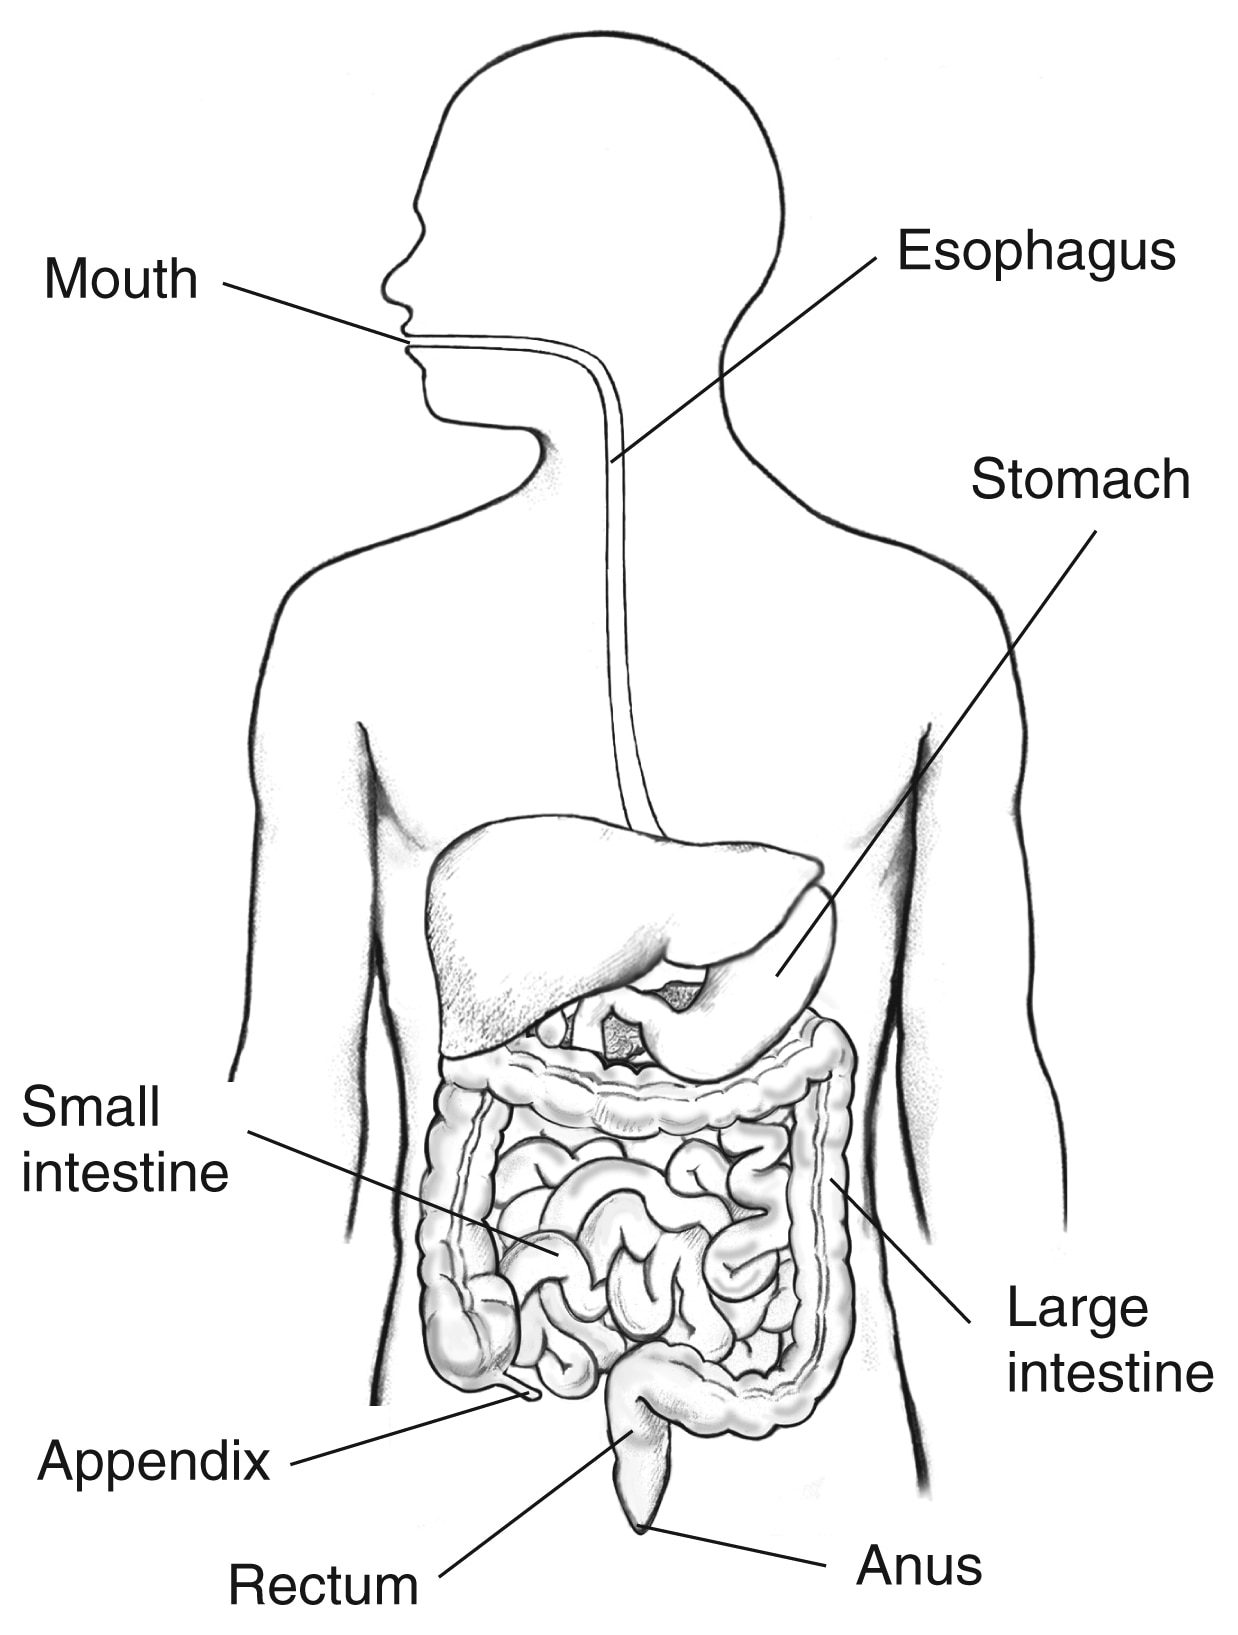 Digestive Tract With Labels For Mouth Esophagus Stomach